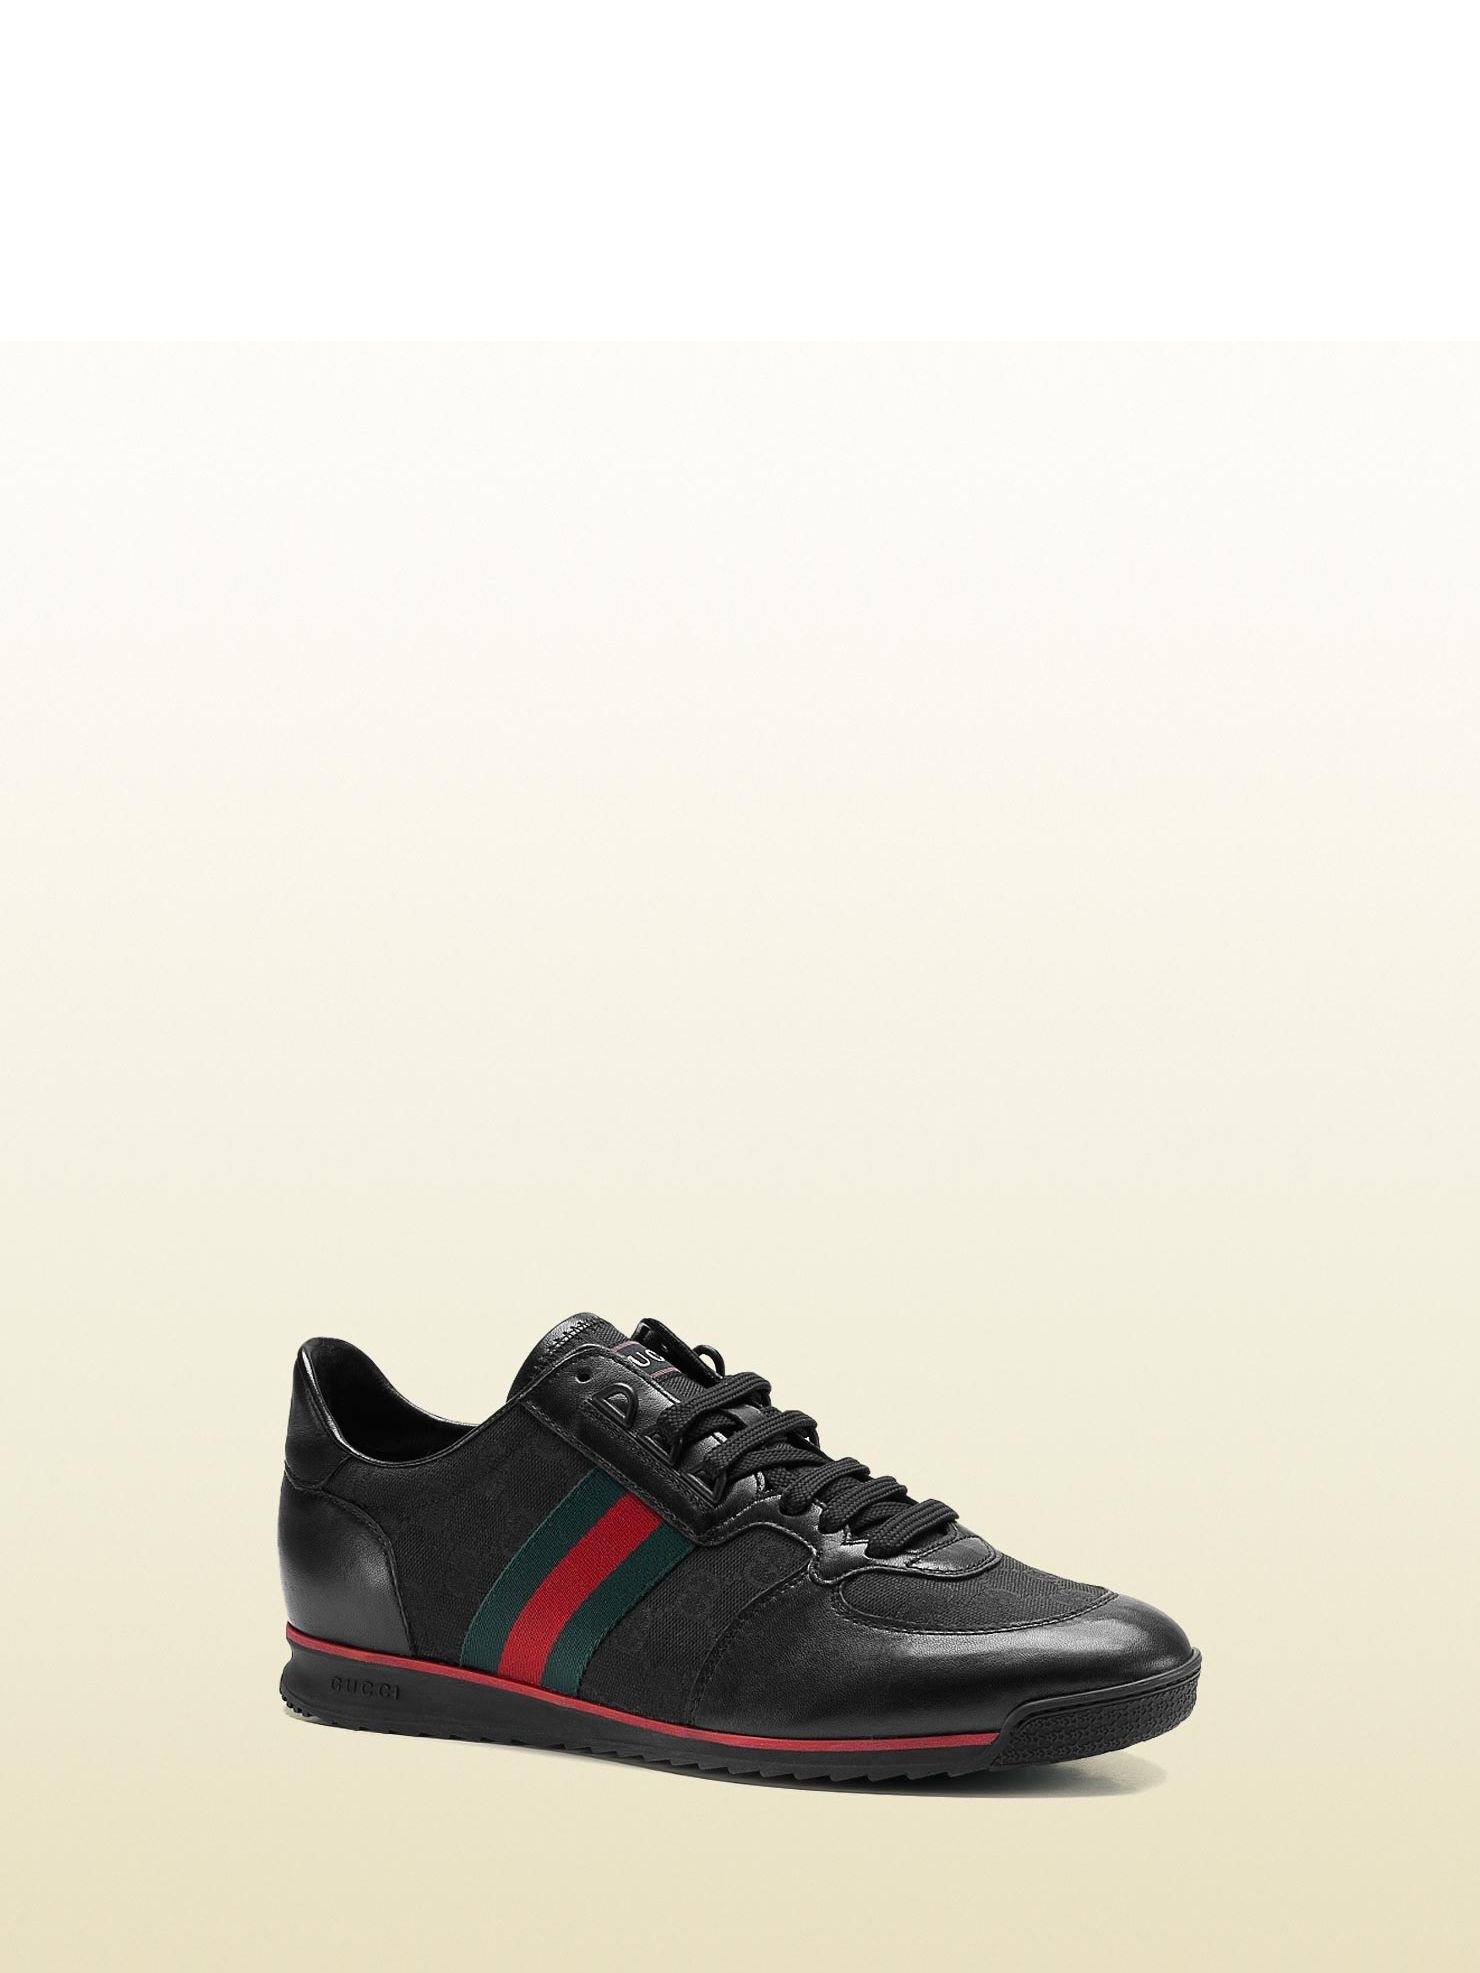 gucci shoes sneakers original price